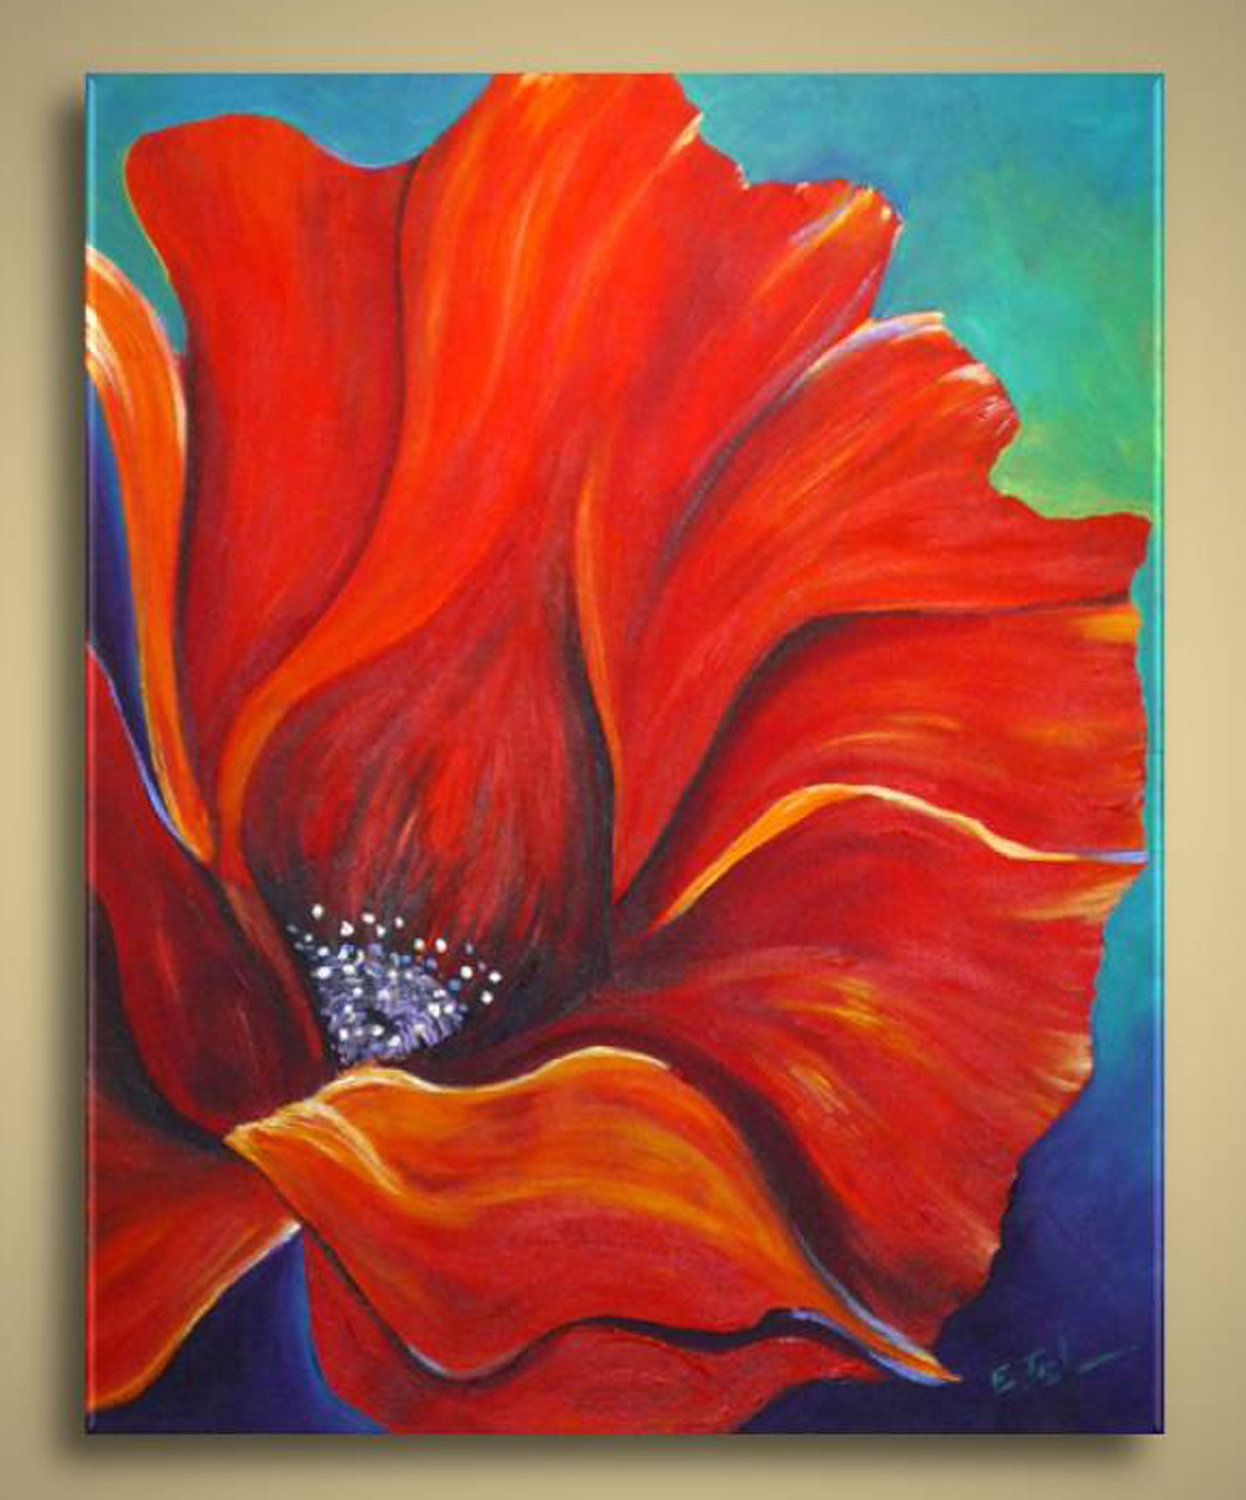 Poppy painting canvas painting ideas pinterest for Oil or acrylic